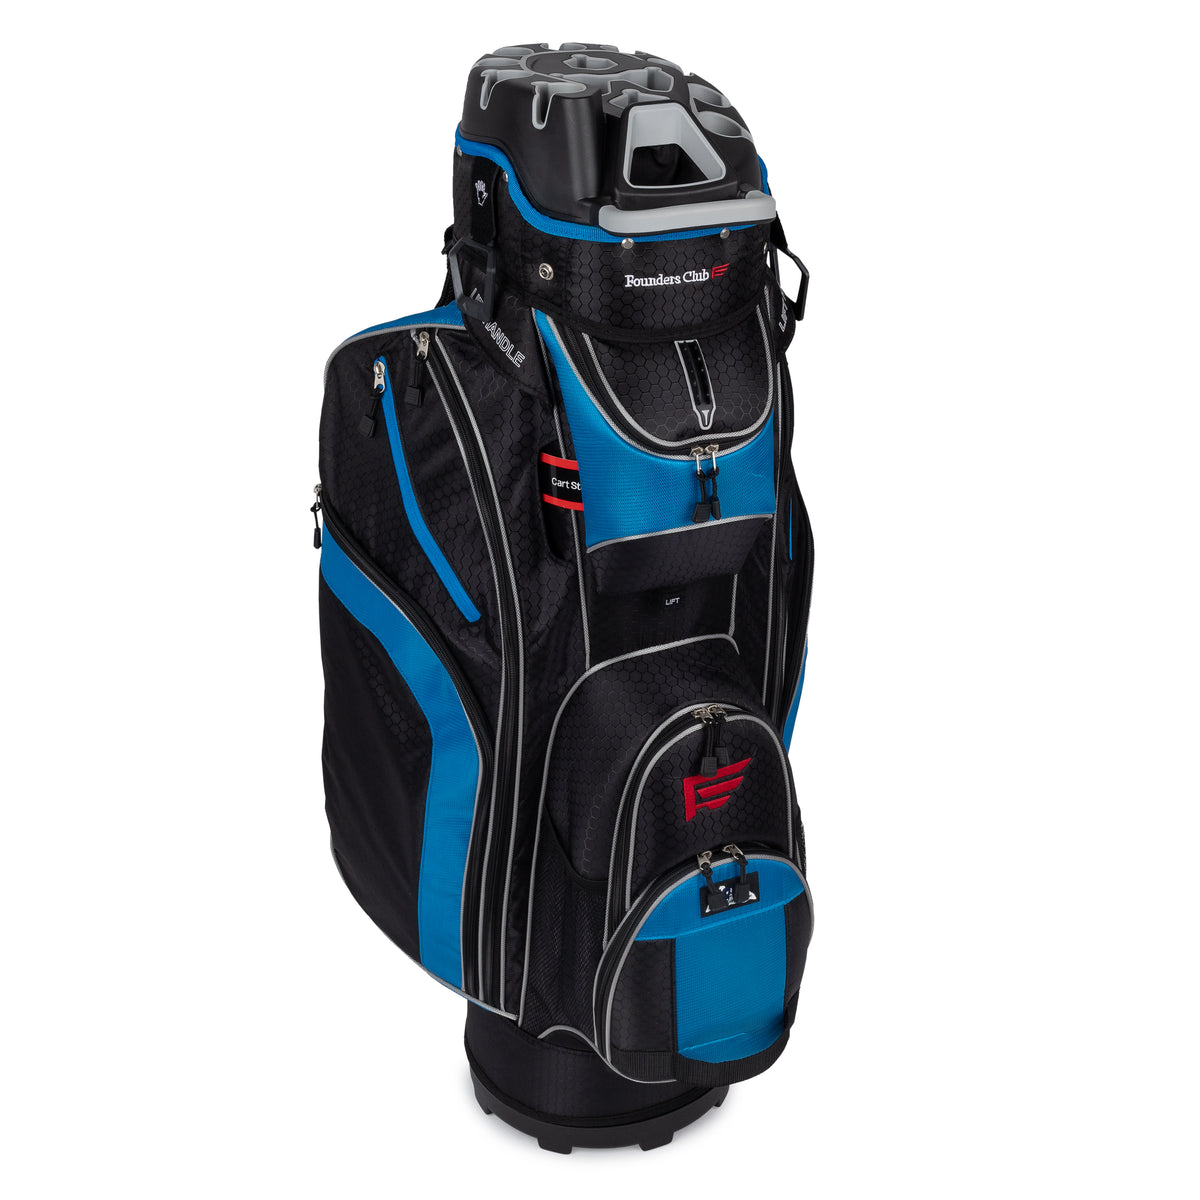 Founders Club Premium 14 Way Cart Bag - Aegean Blue